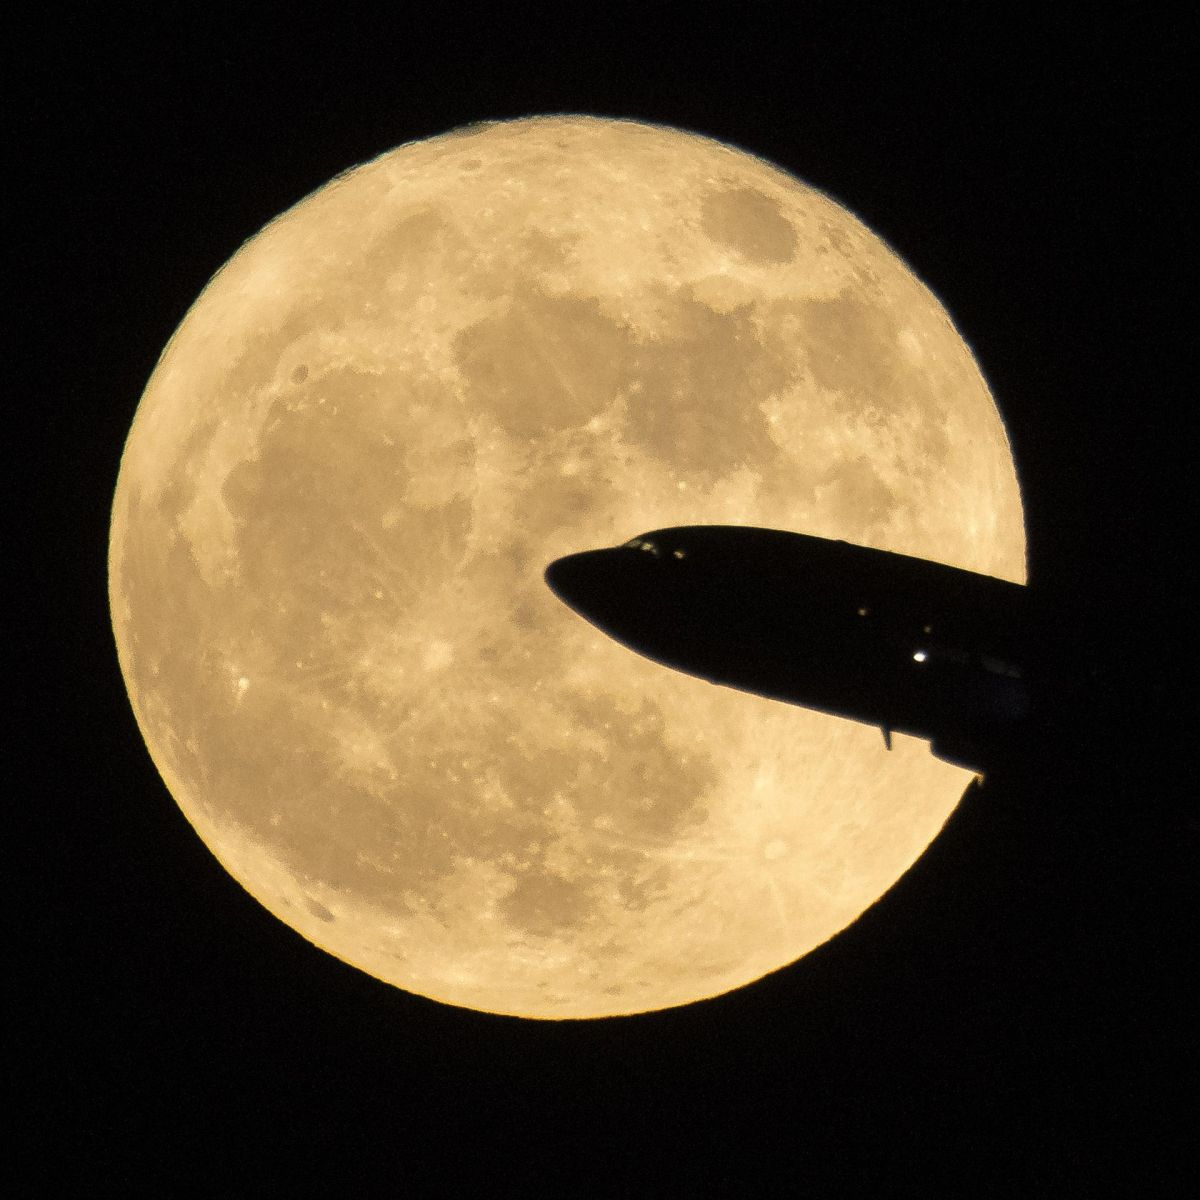 The 'Supermoon' Syndrome Rises with February's Full Moon